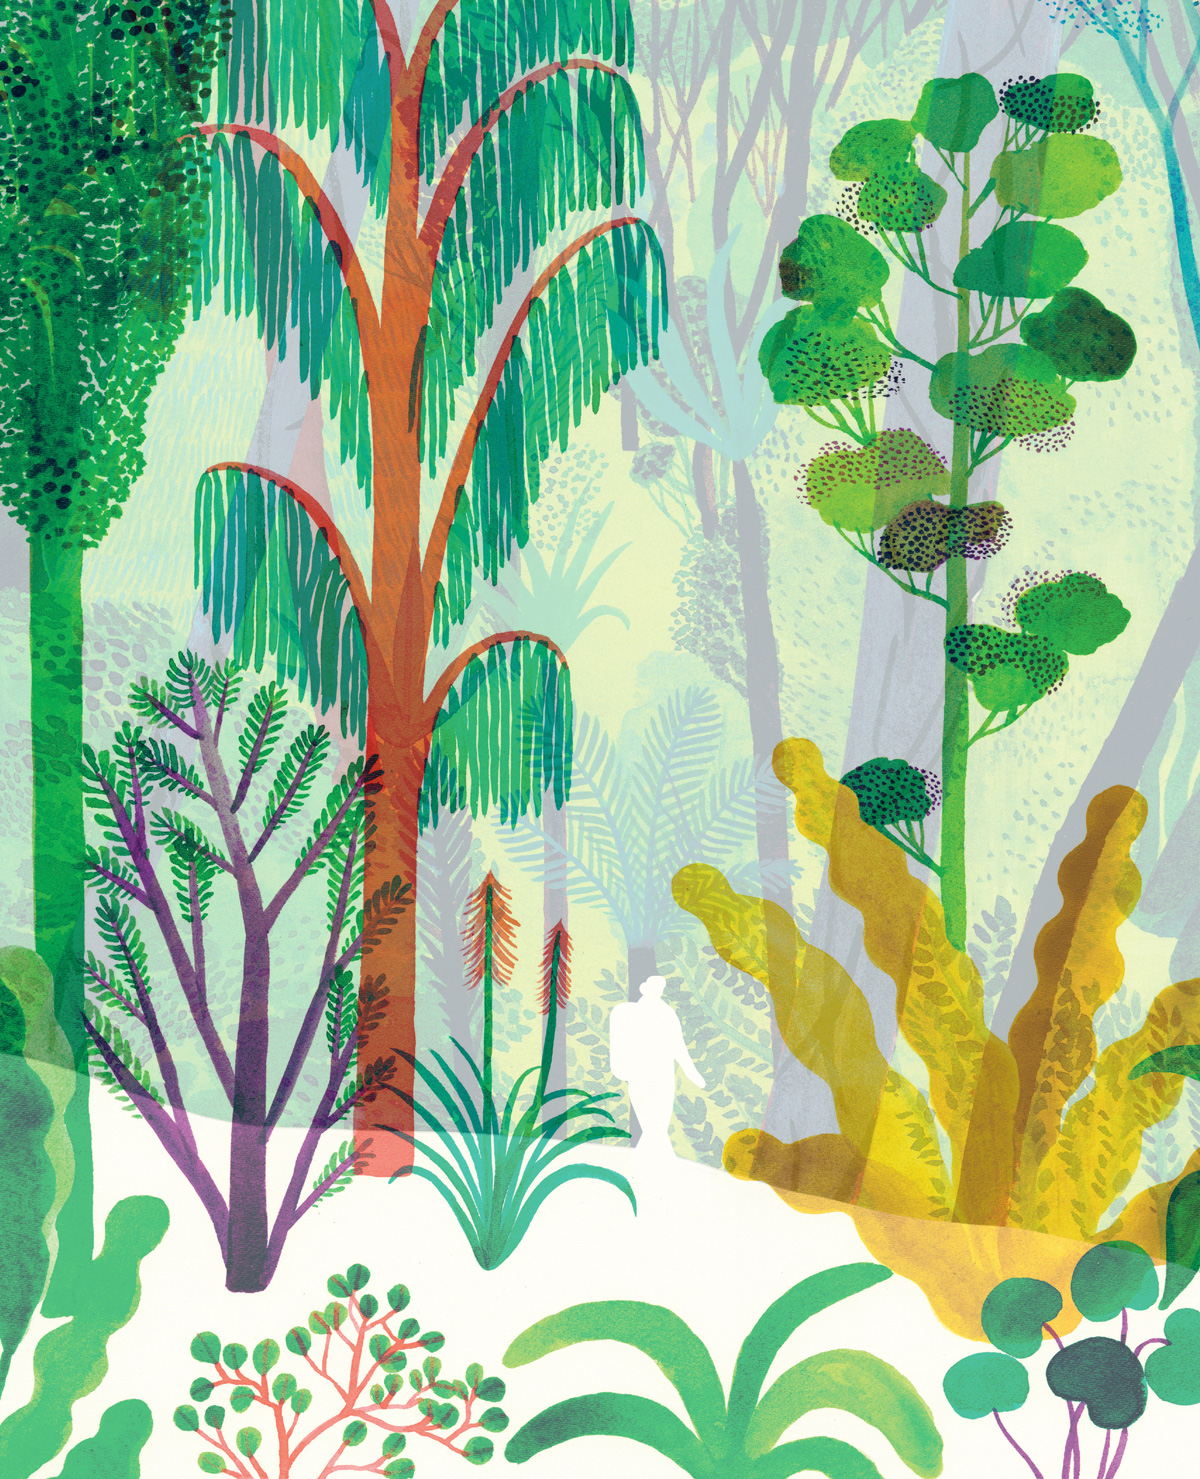 A Stunning Illustrated Celebration of the Wilderness and the Human Role in Nature Not as Conqueror but as Humble Witness